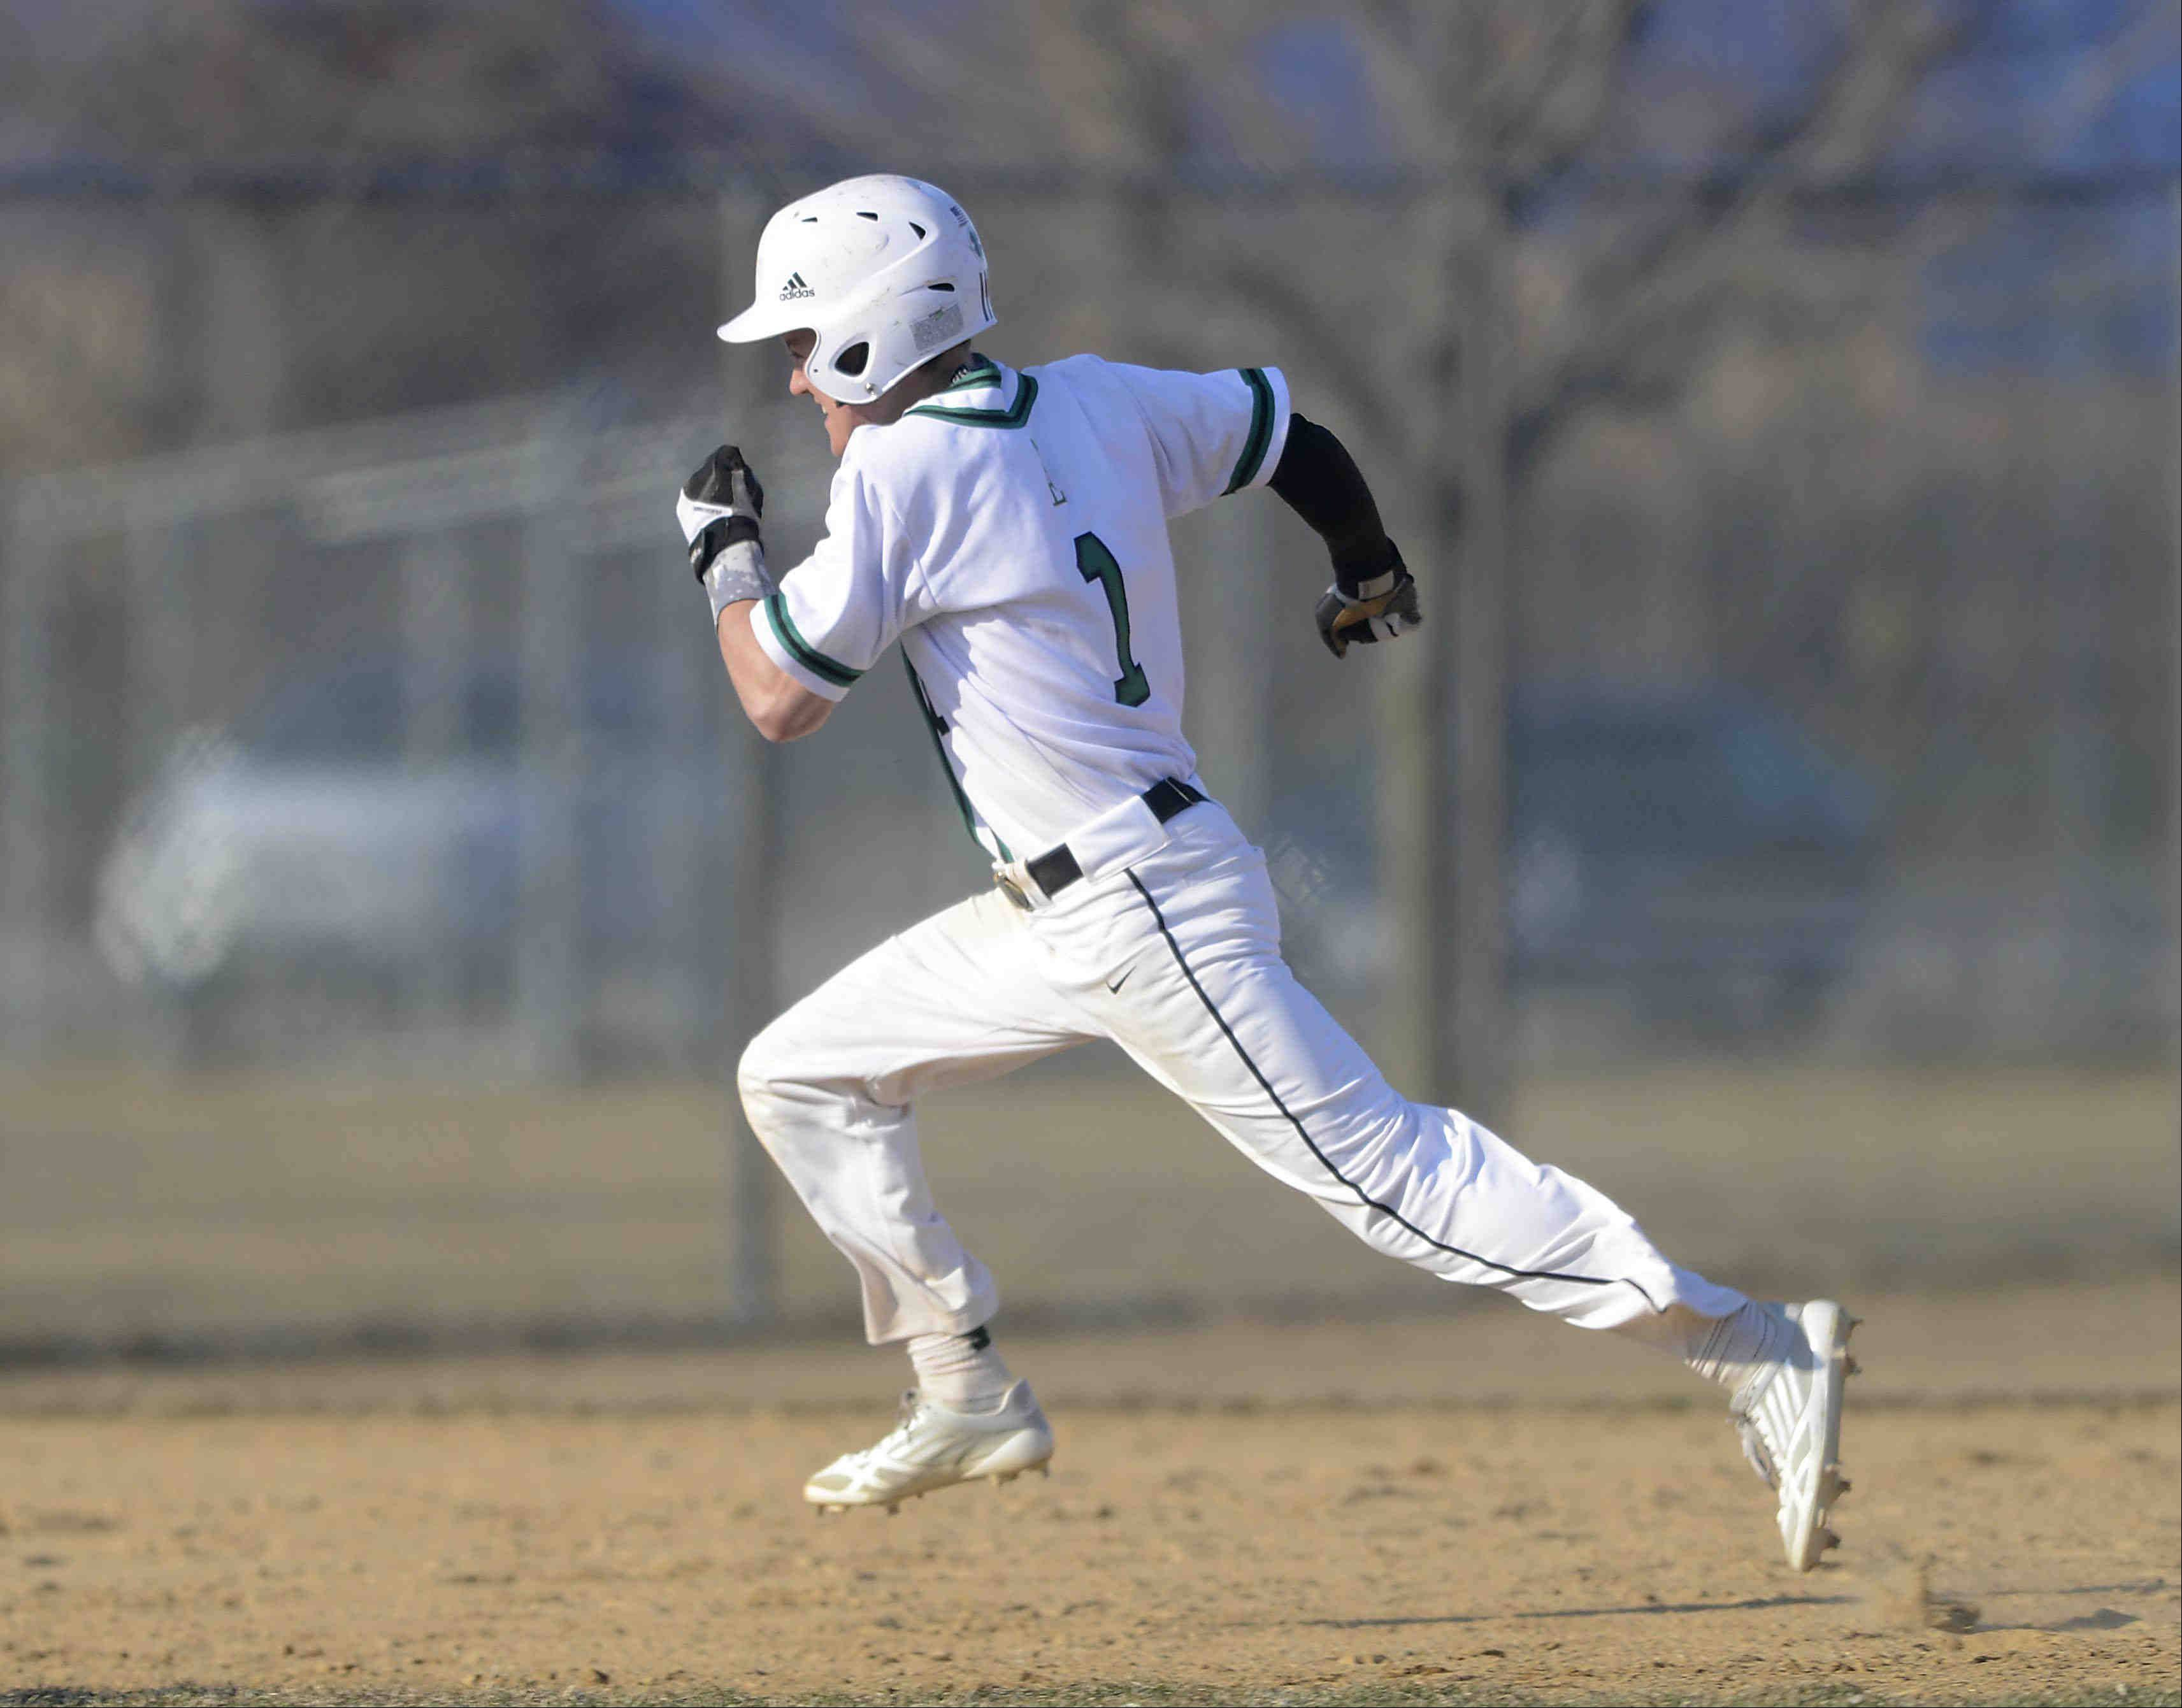 St. Edward's Michael Castoro sprints toward third base on his way to a 2-run triple in the third inning against Aurora Christian Thursday in Elgin.